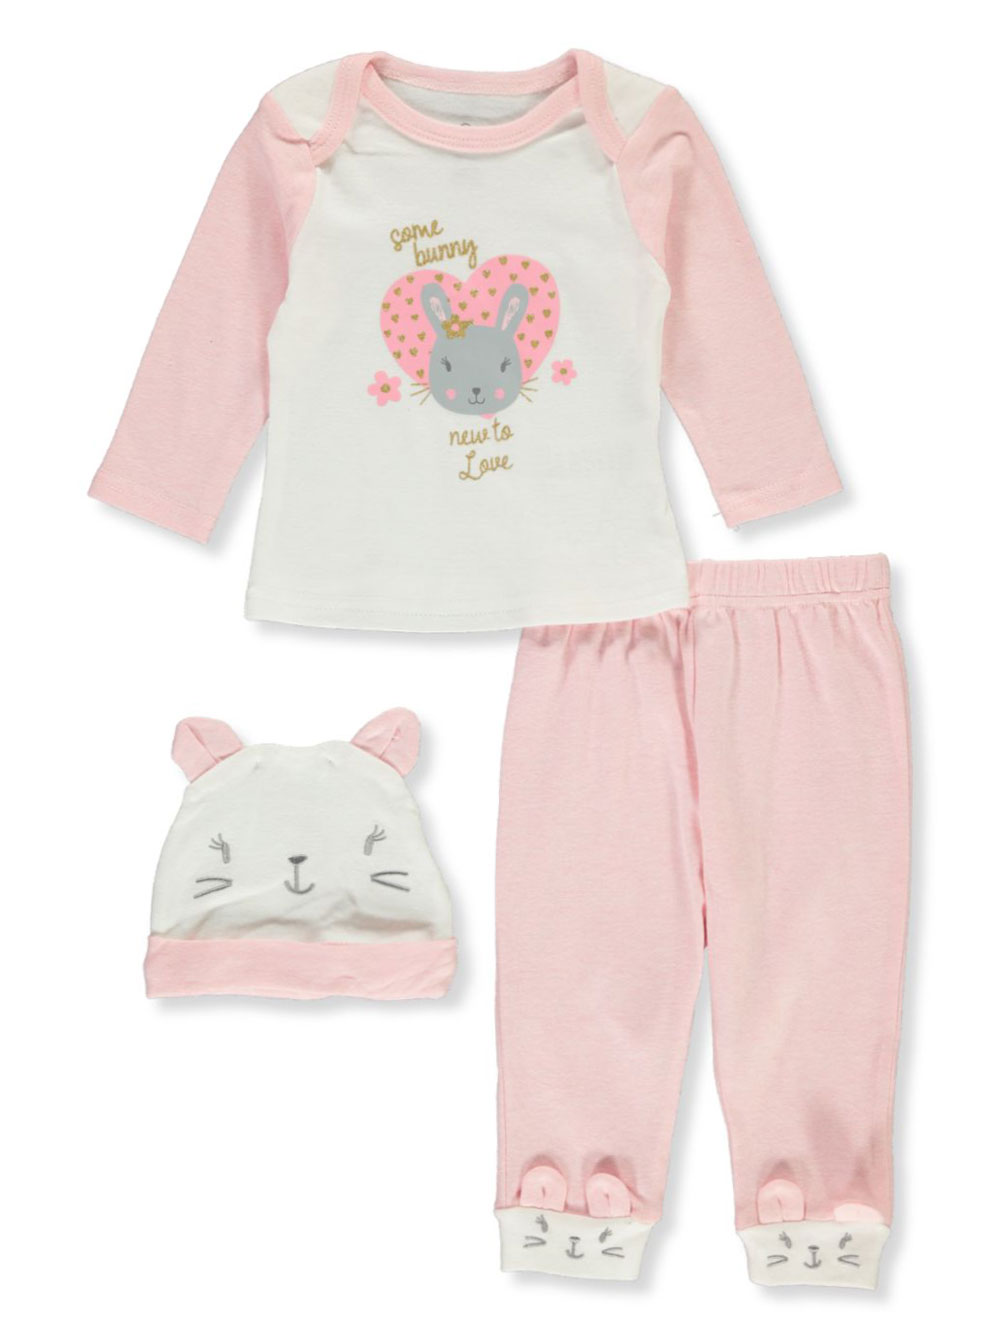 Pant Sets 3-Piece Layette Set